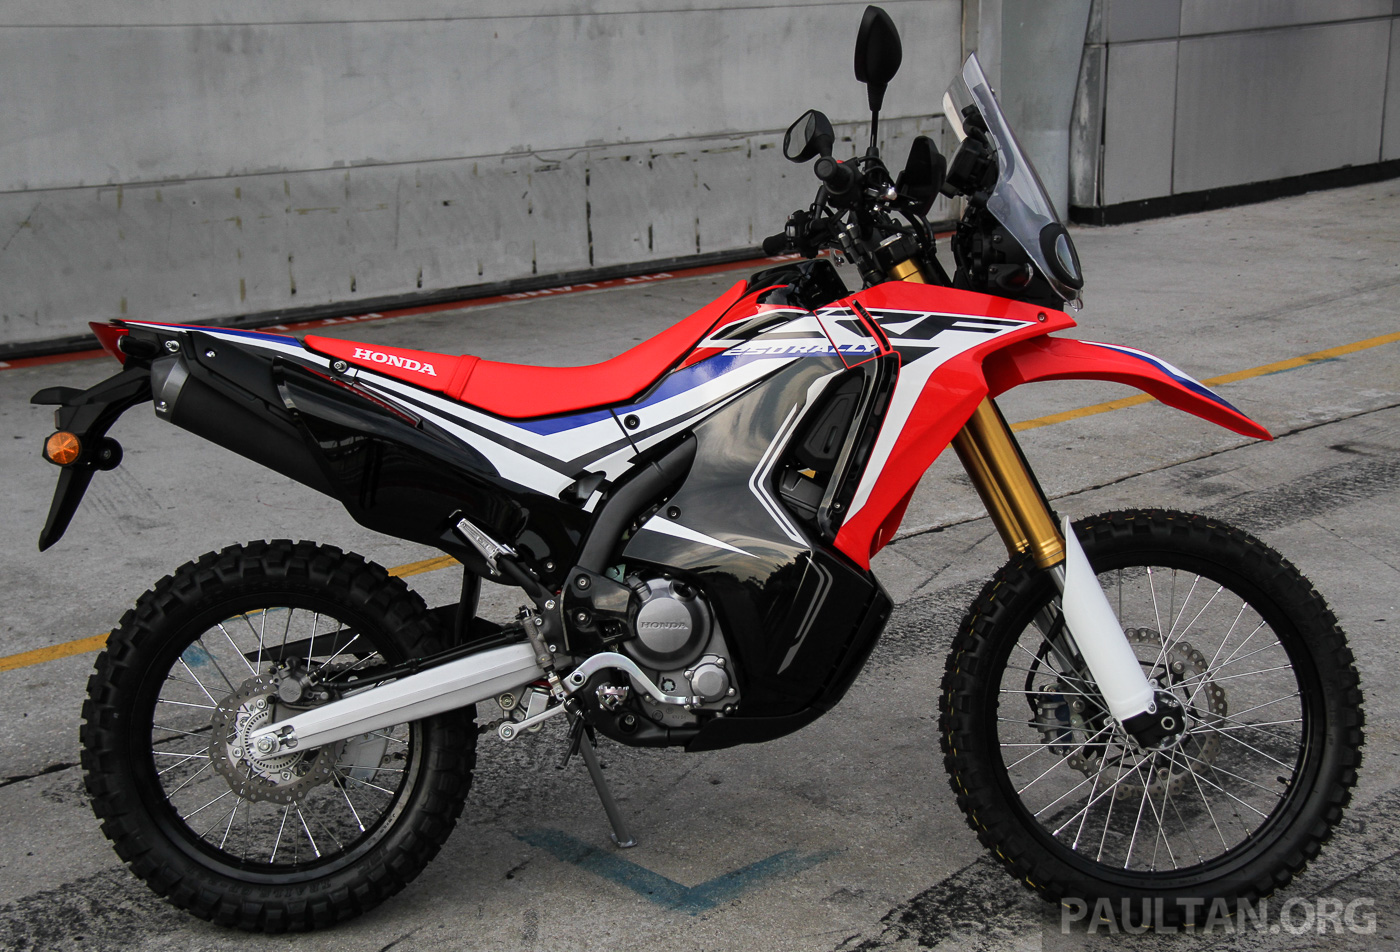 boon siew honda pamer crf250 rally dan crf250l akan dilancar ogos ini harga sekitar rm27k rm23k. Black Bedroom Furniture Sets. Home Design Ideas